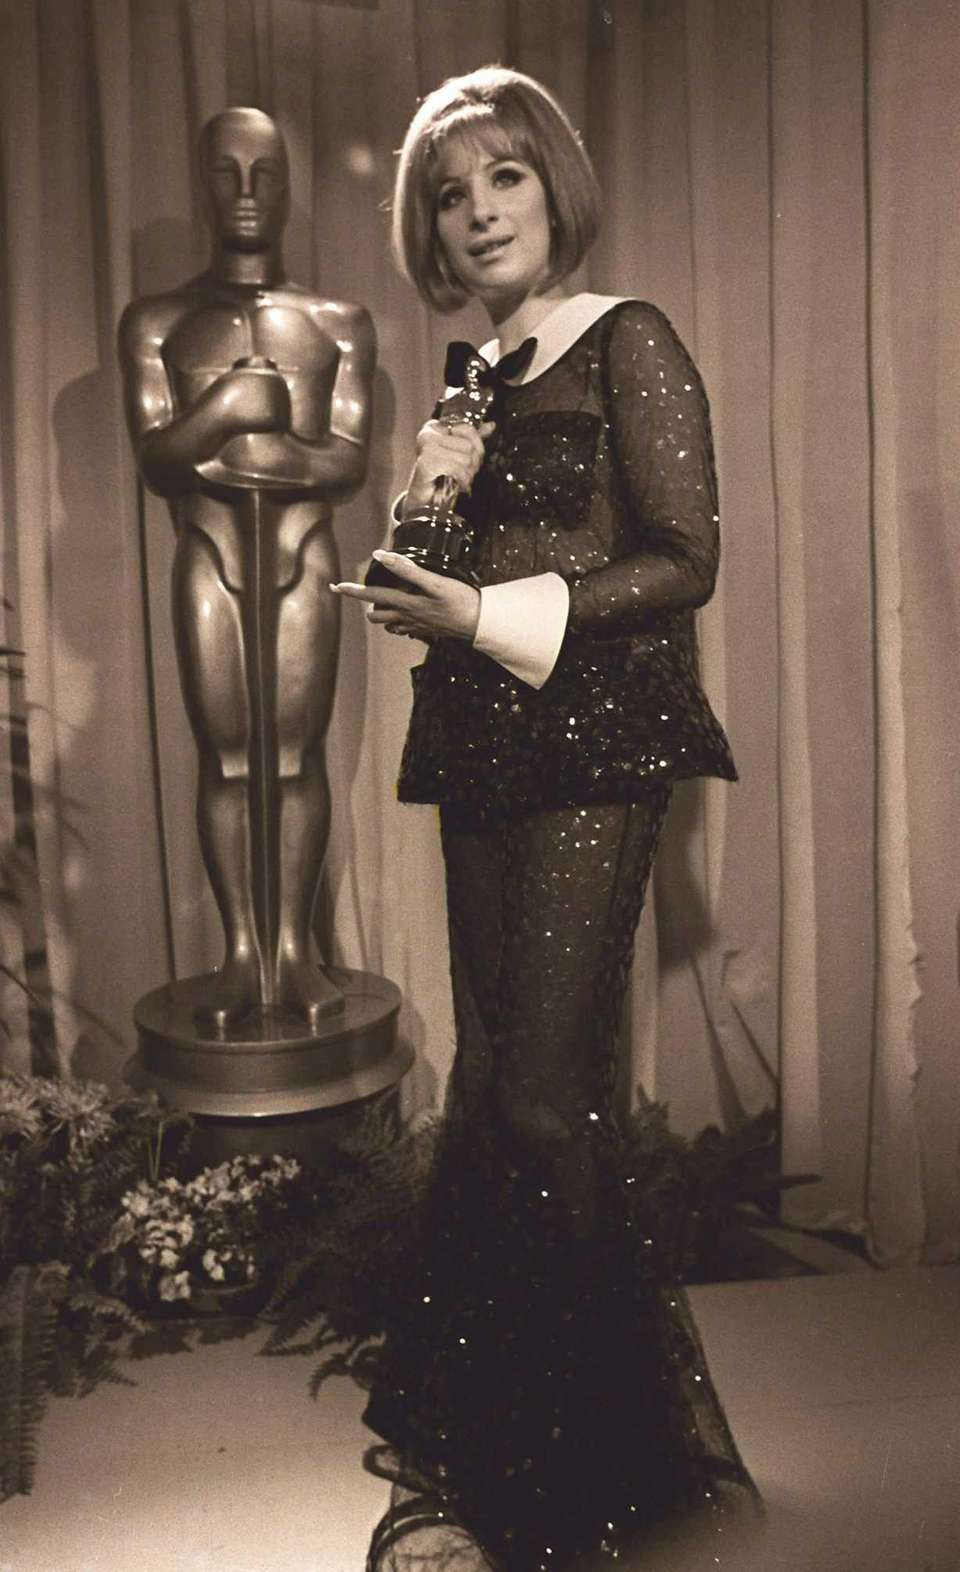 Barbra Streisand, holding the Oscar statuette she won